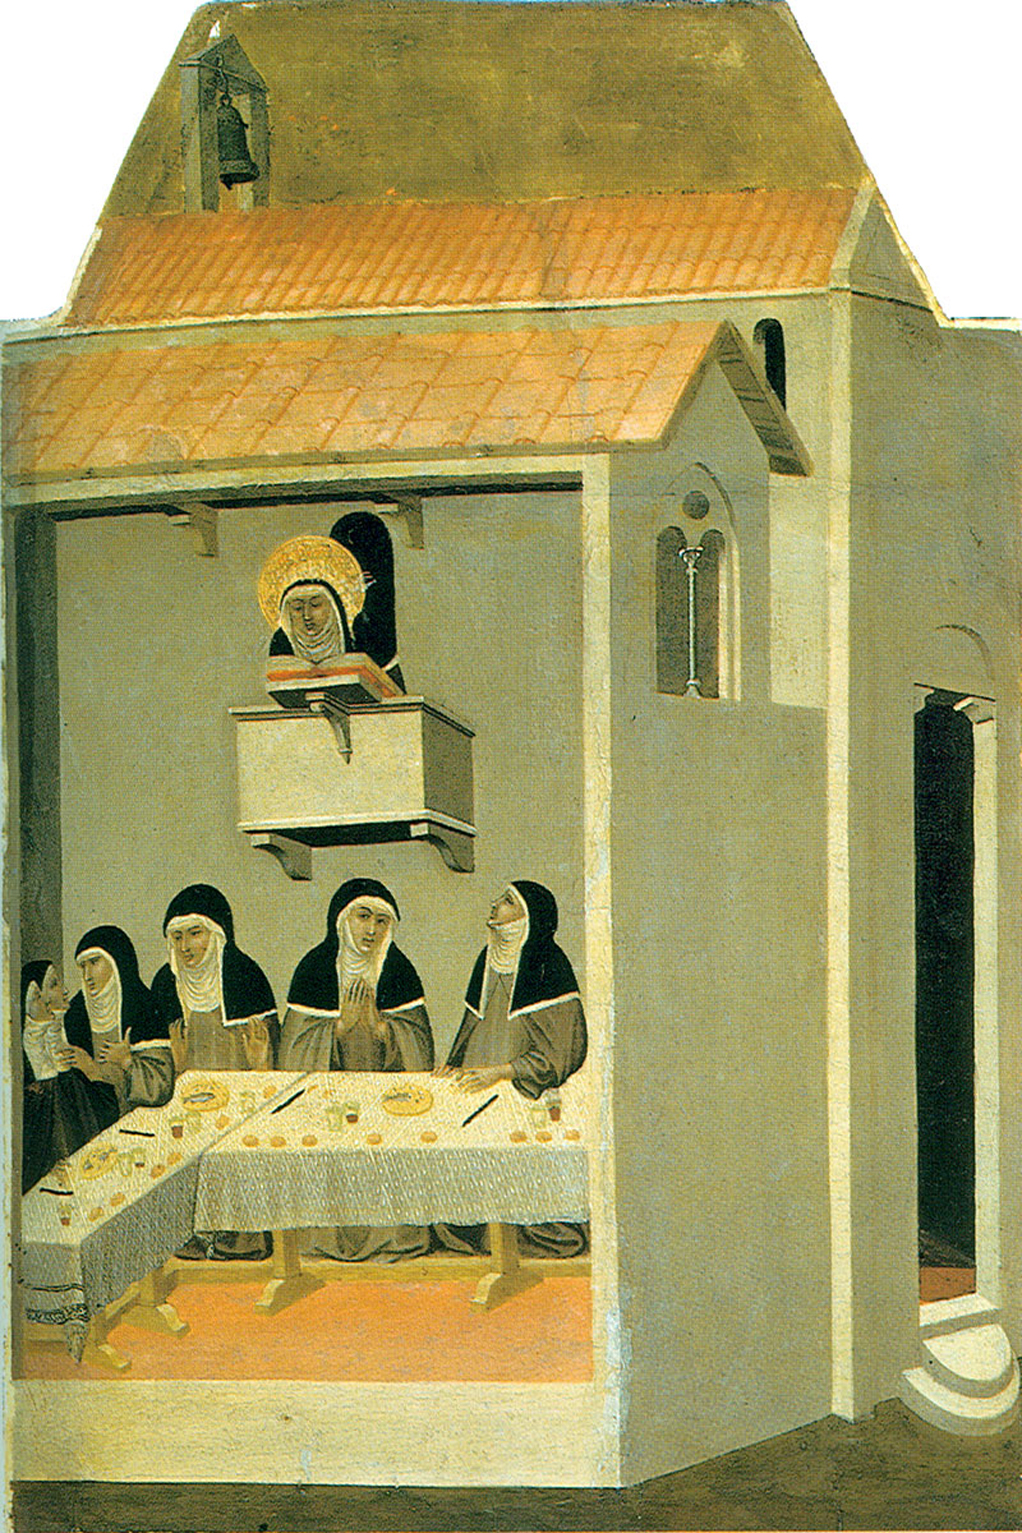 Pietro Lorenzetti (c. 1280 - 1348)  Humilitas Reads in the Refectory  Gold and tempera on panel, 1316  Galleria degli Uffizi, Florence, Italy